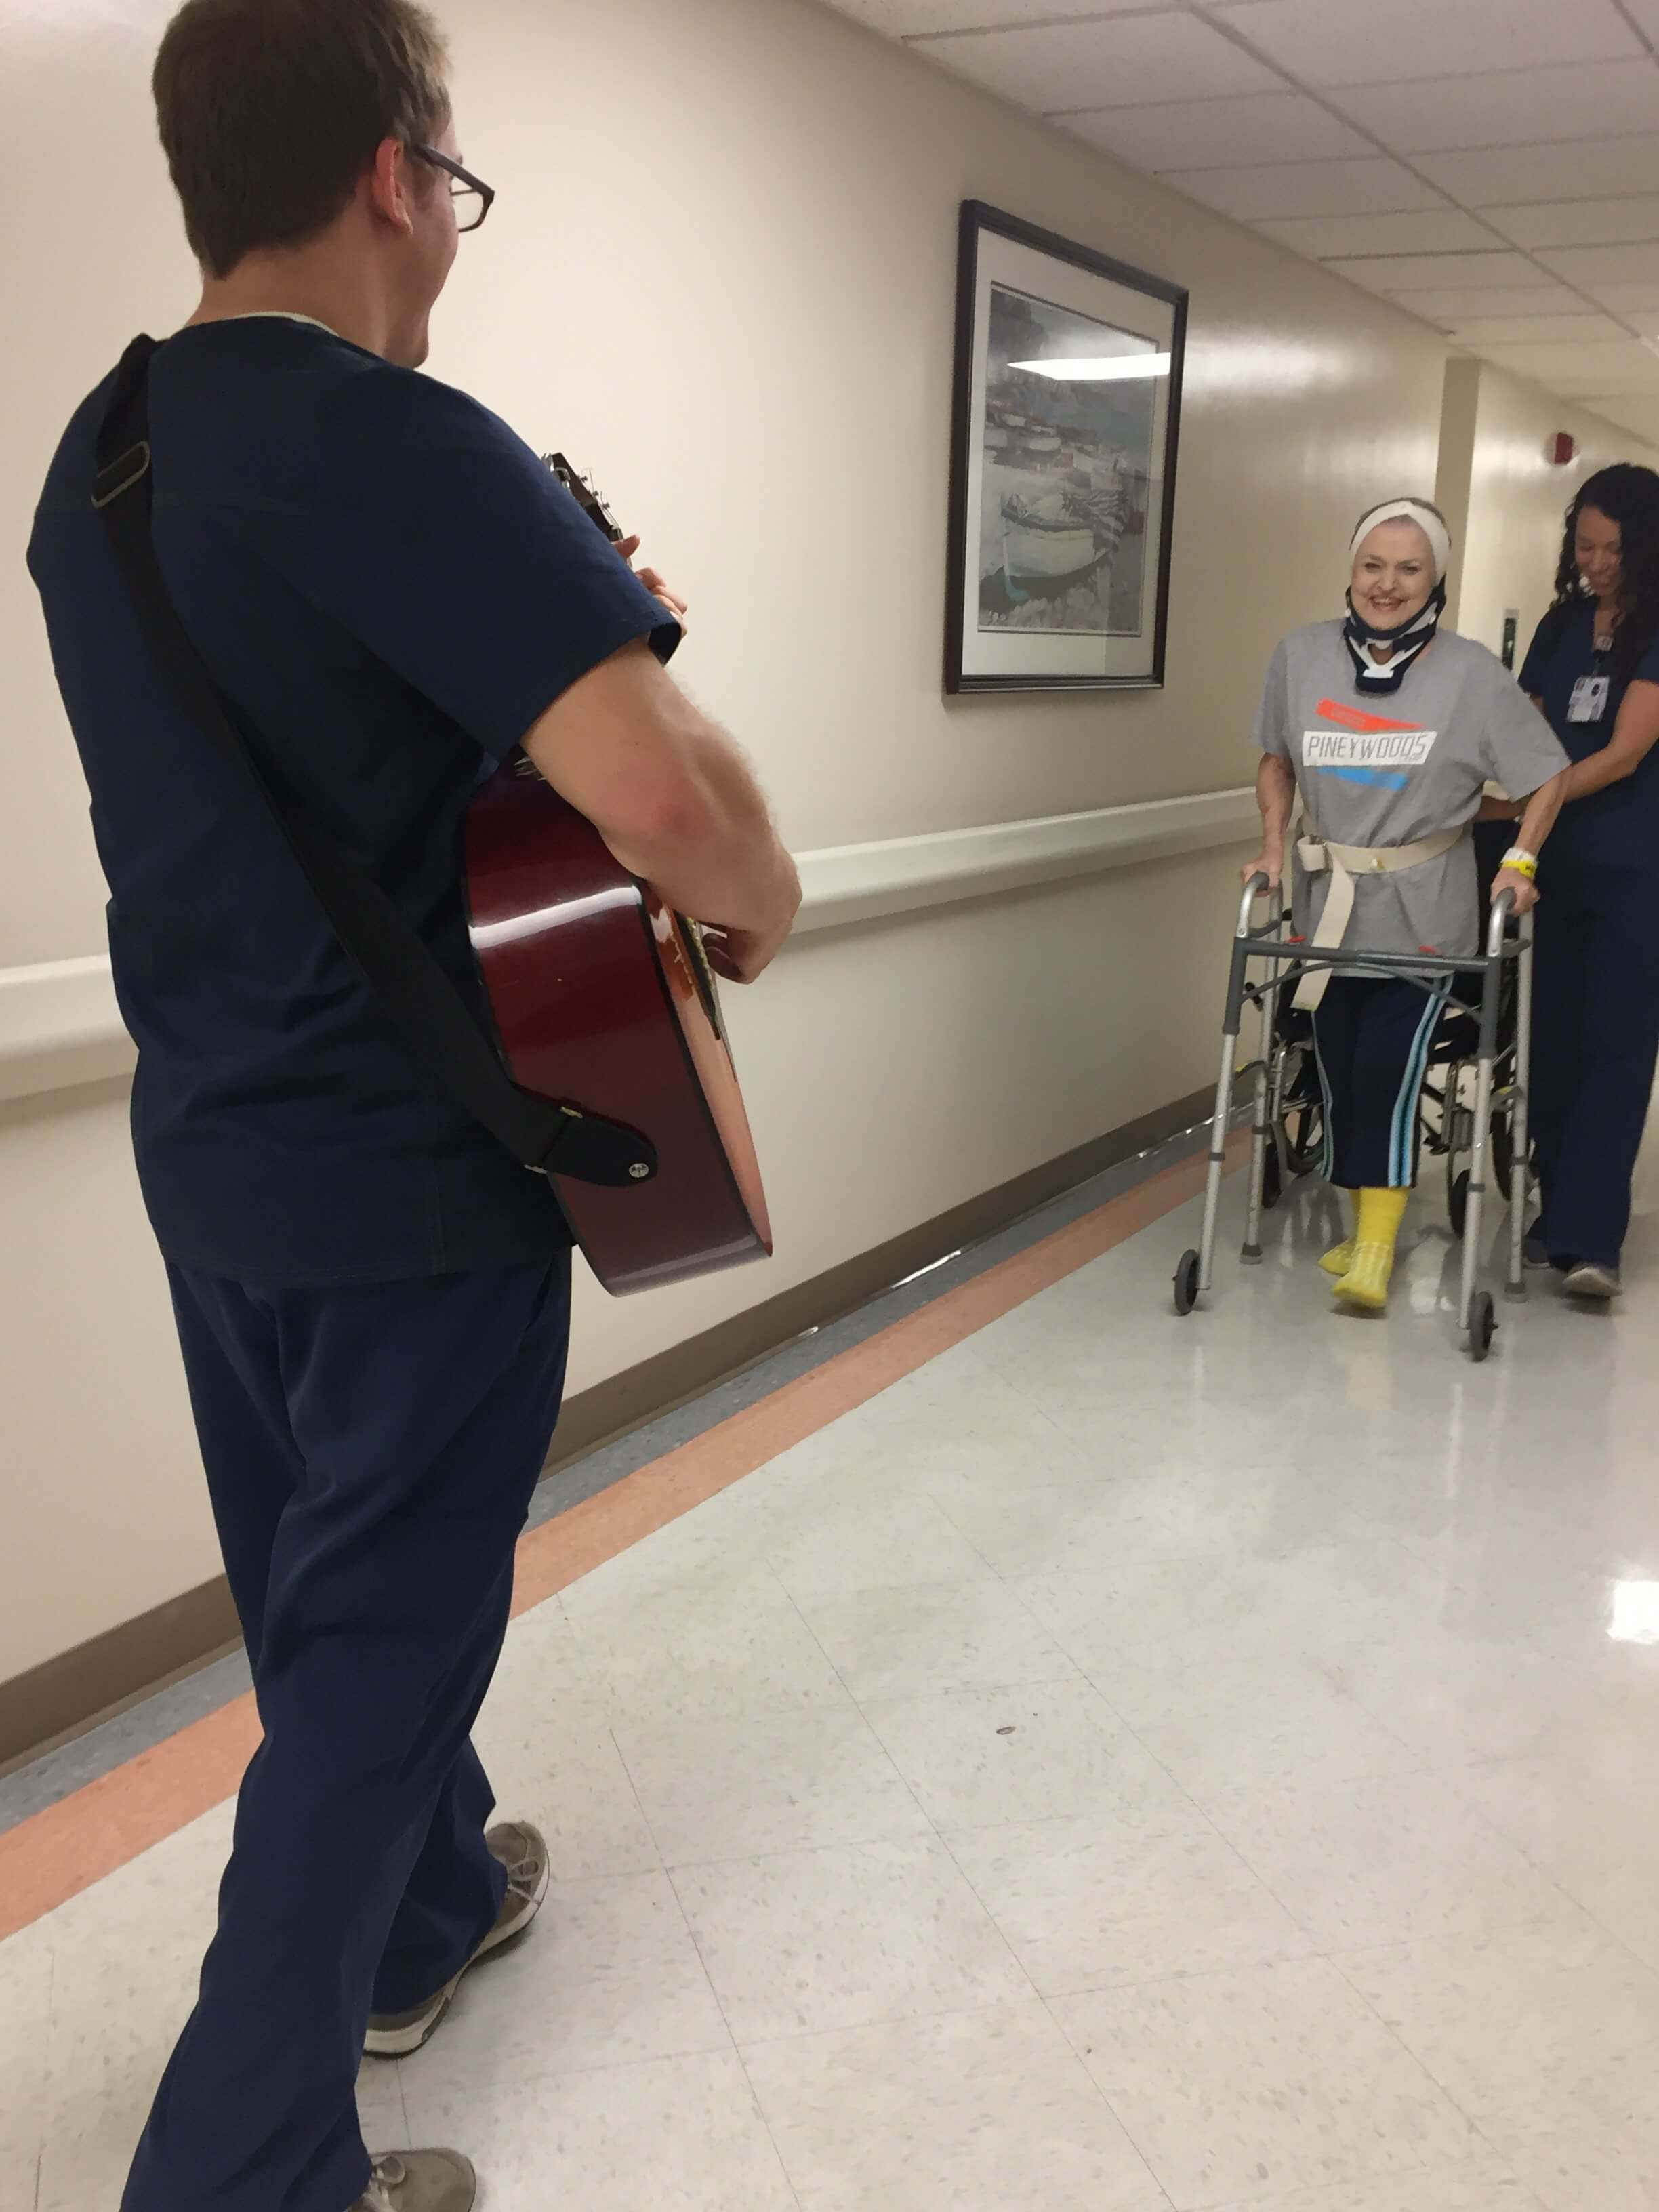 Music therapists work with a Houston Methodist patient using rhythmic auditory stimulation during gait training post spinal cord injury. (Photo Courtesy of Houston Methodist)